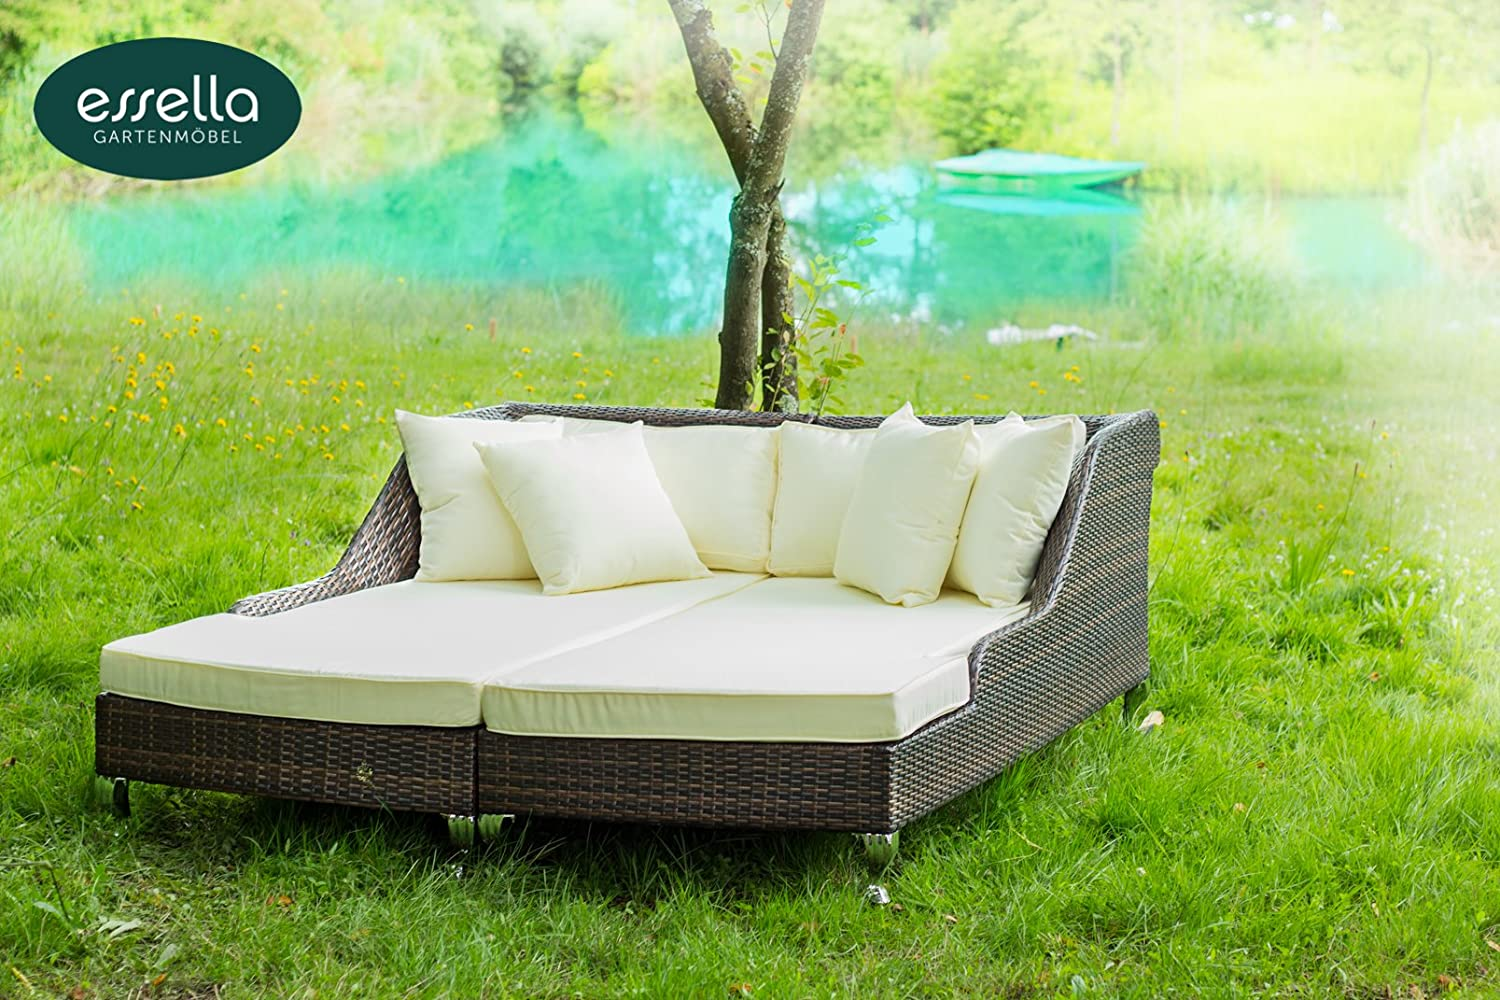 polyrattan daybed paris flachgeflecht bicolor braun gartenm bel terassenm bel g nstig. Black Bedroom Furniture Sets. Home Design Ideas